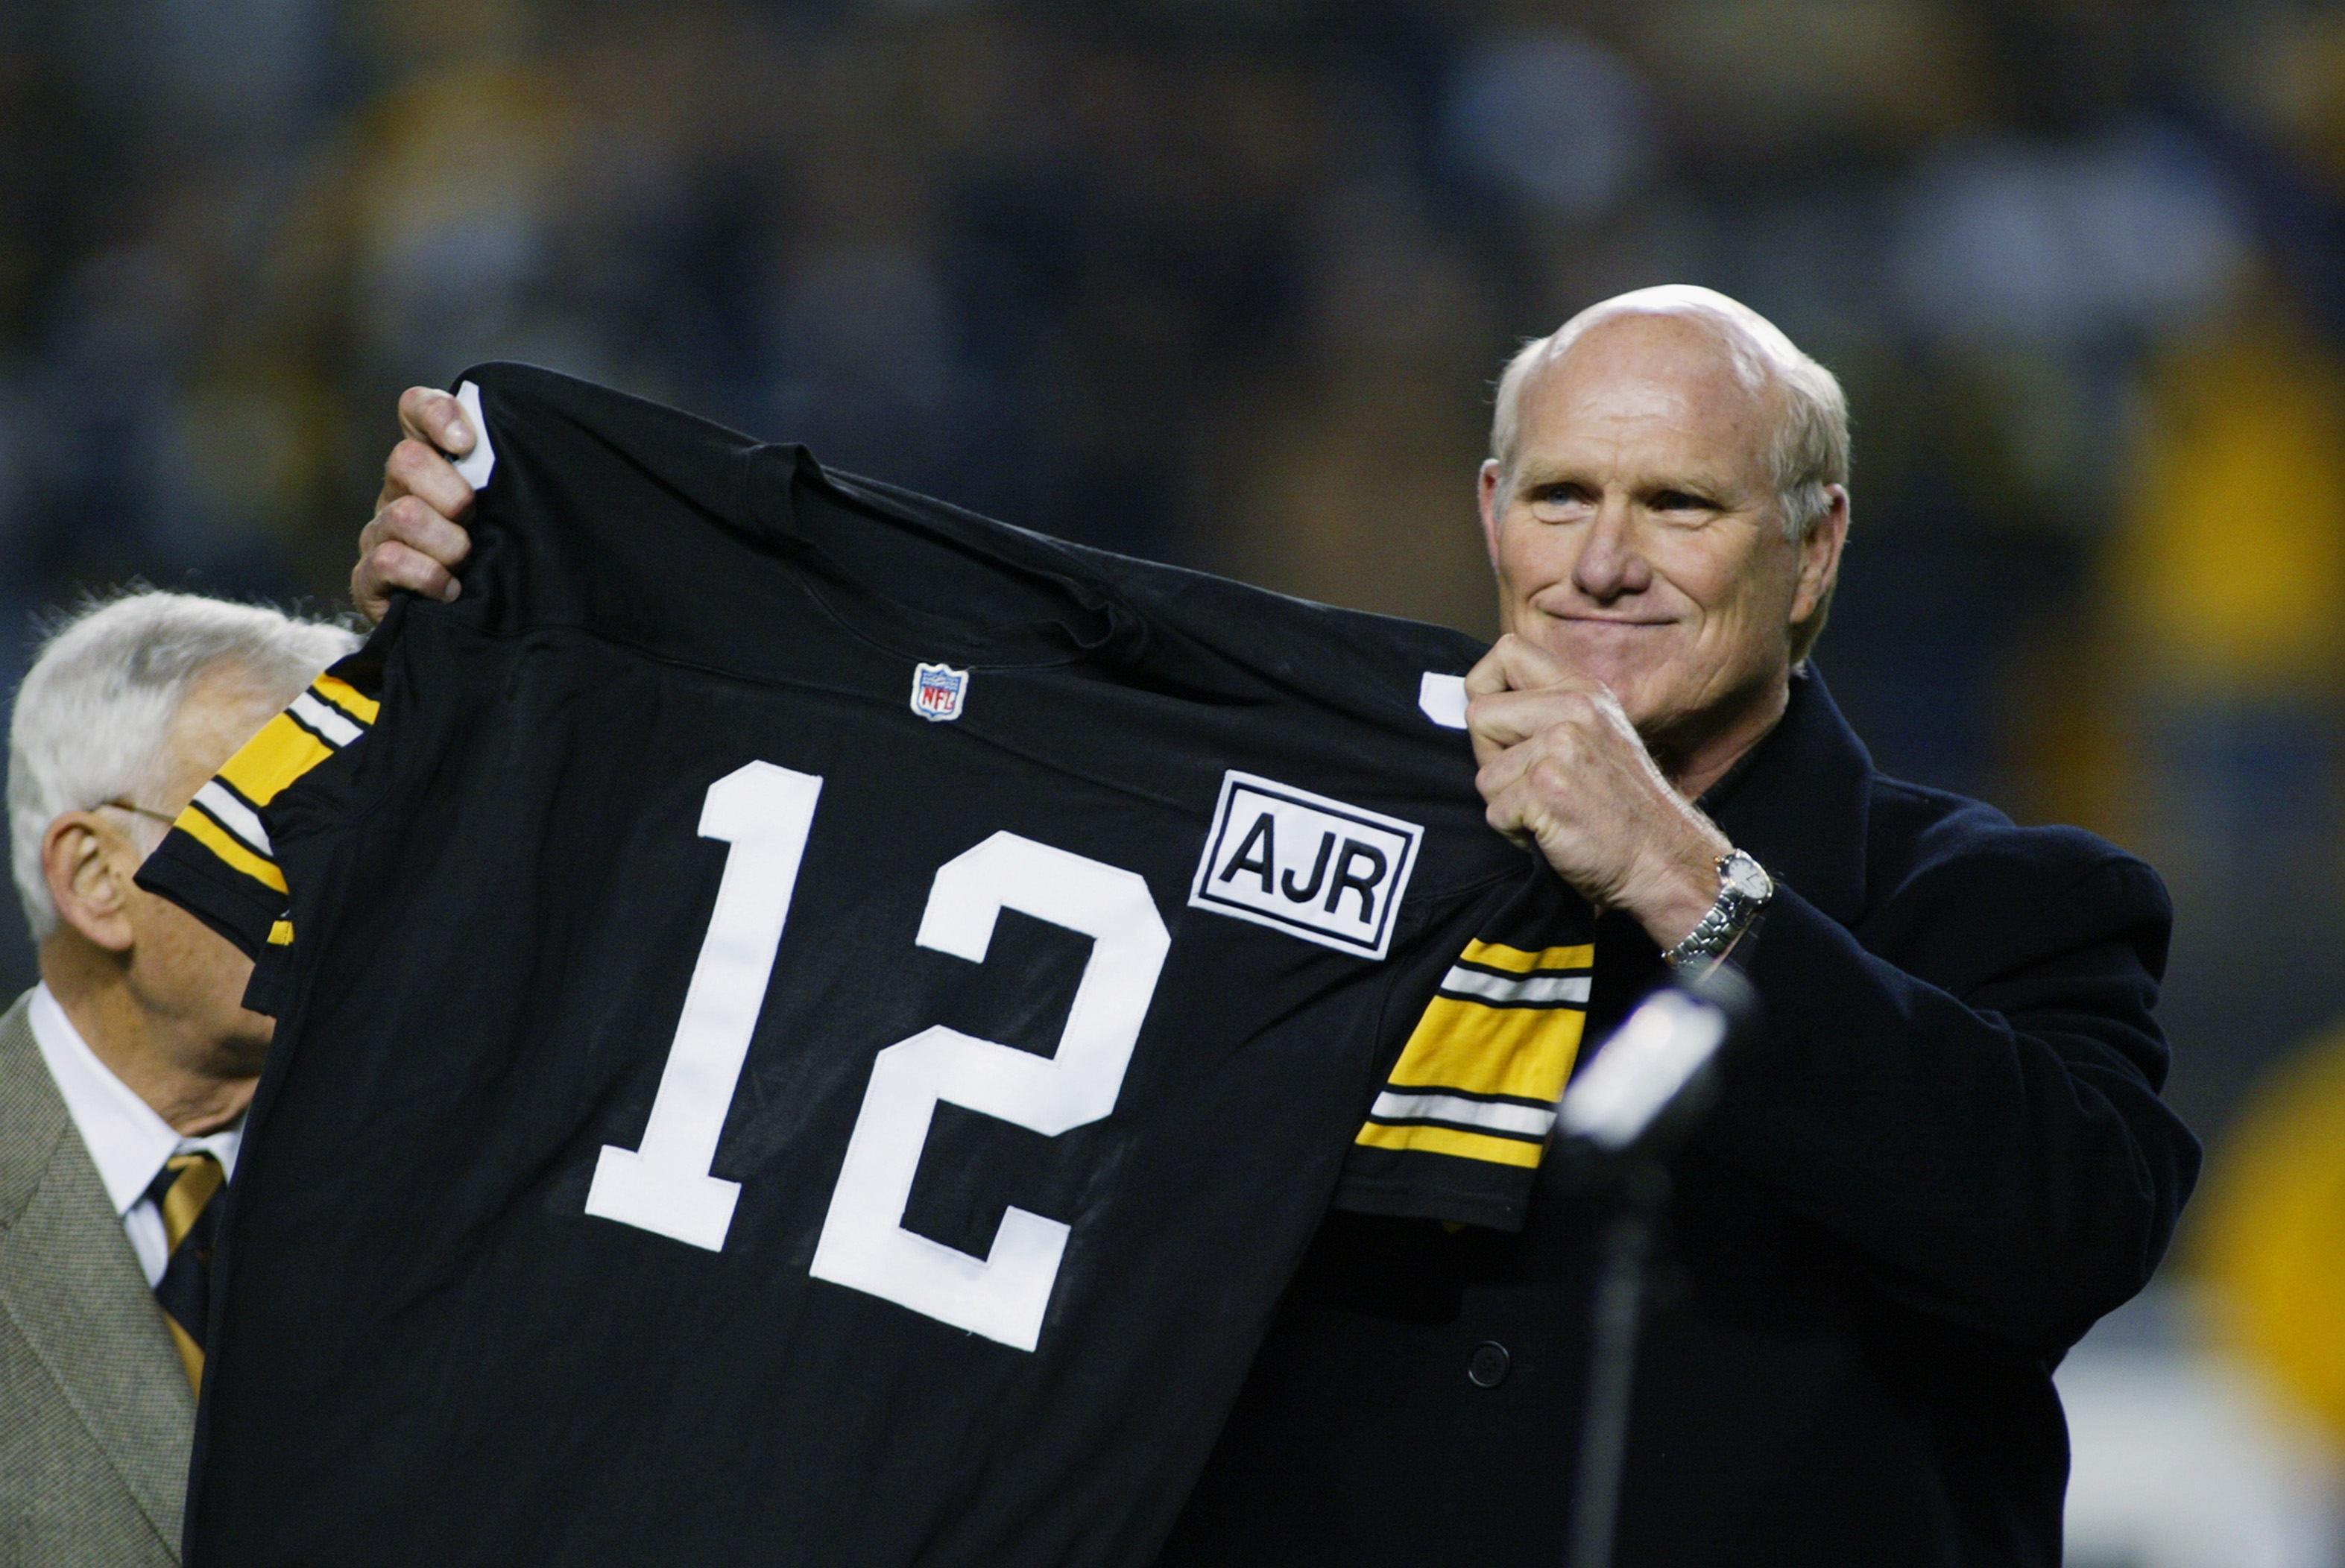 The tradition that Terry Bradshaw laid has come back to Steeler Nation